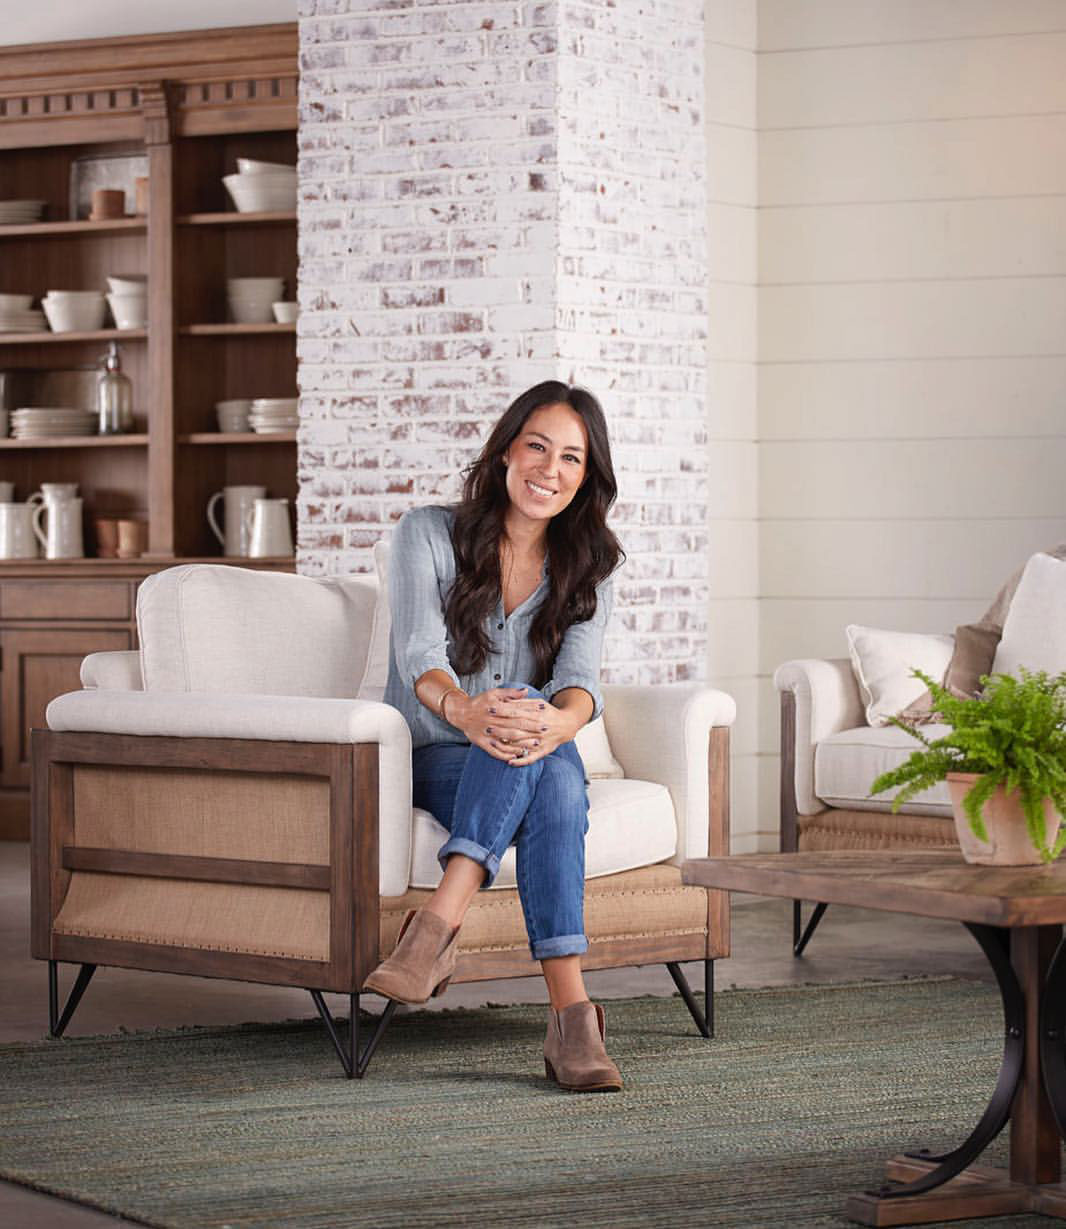 Joanna gaines launches paint line with ace hardware southern living